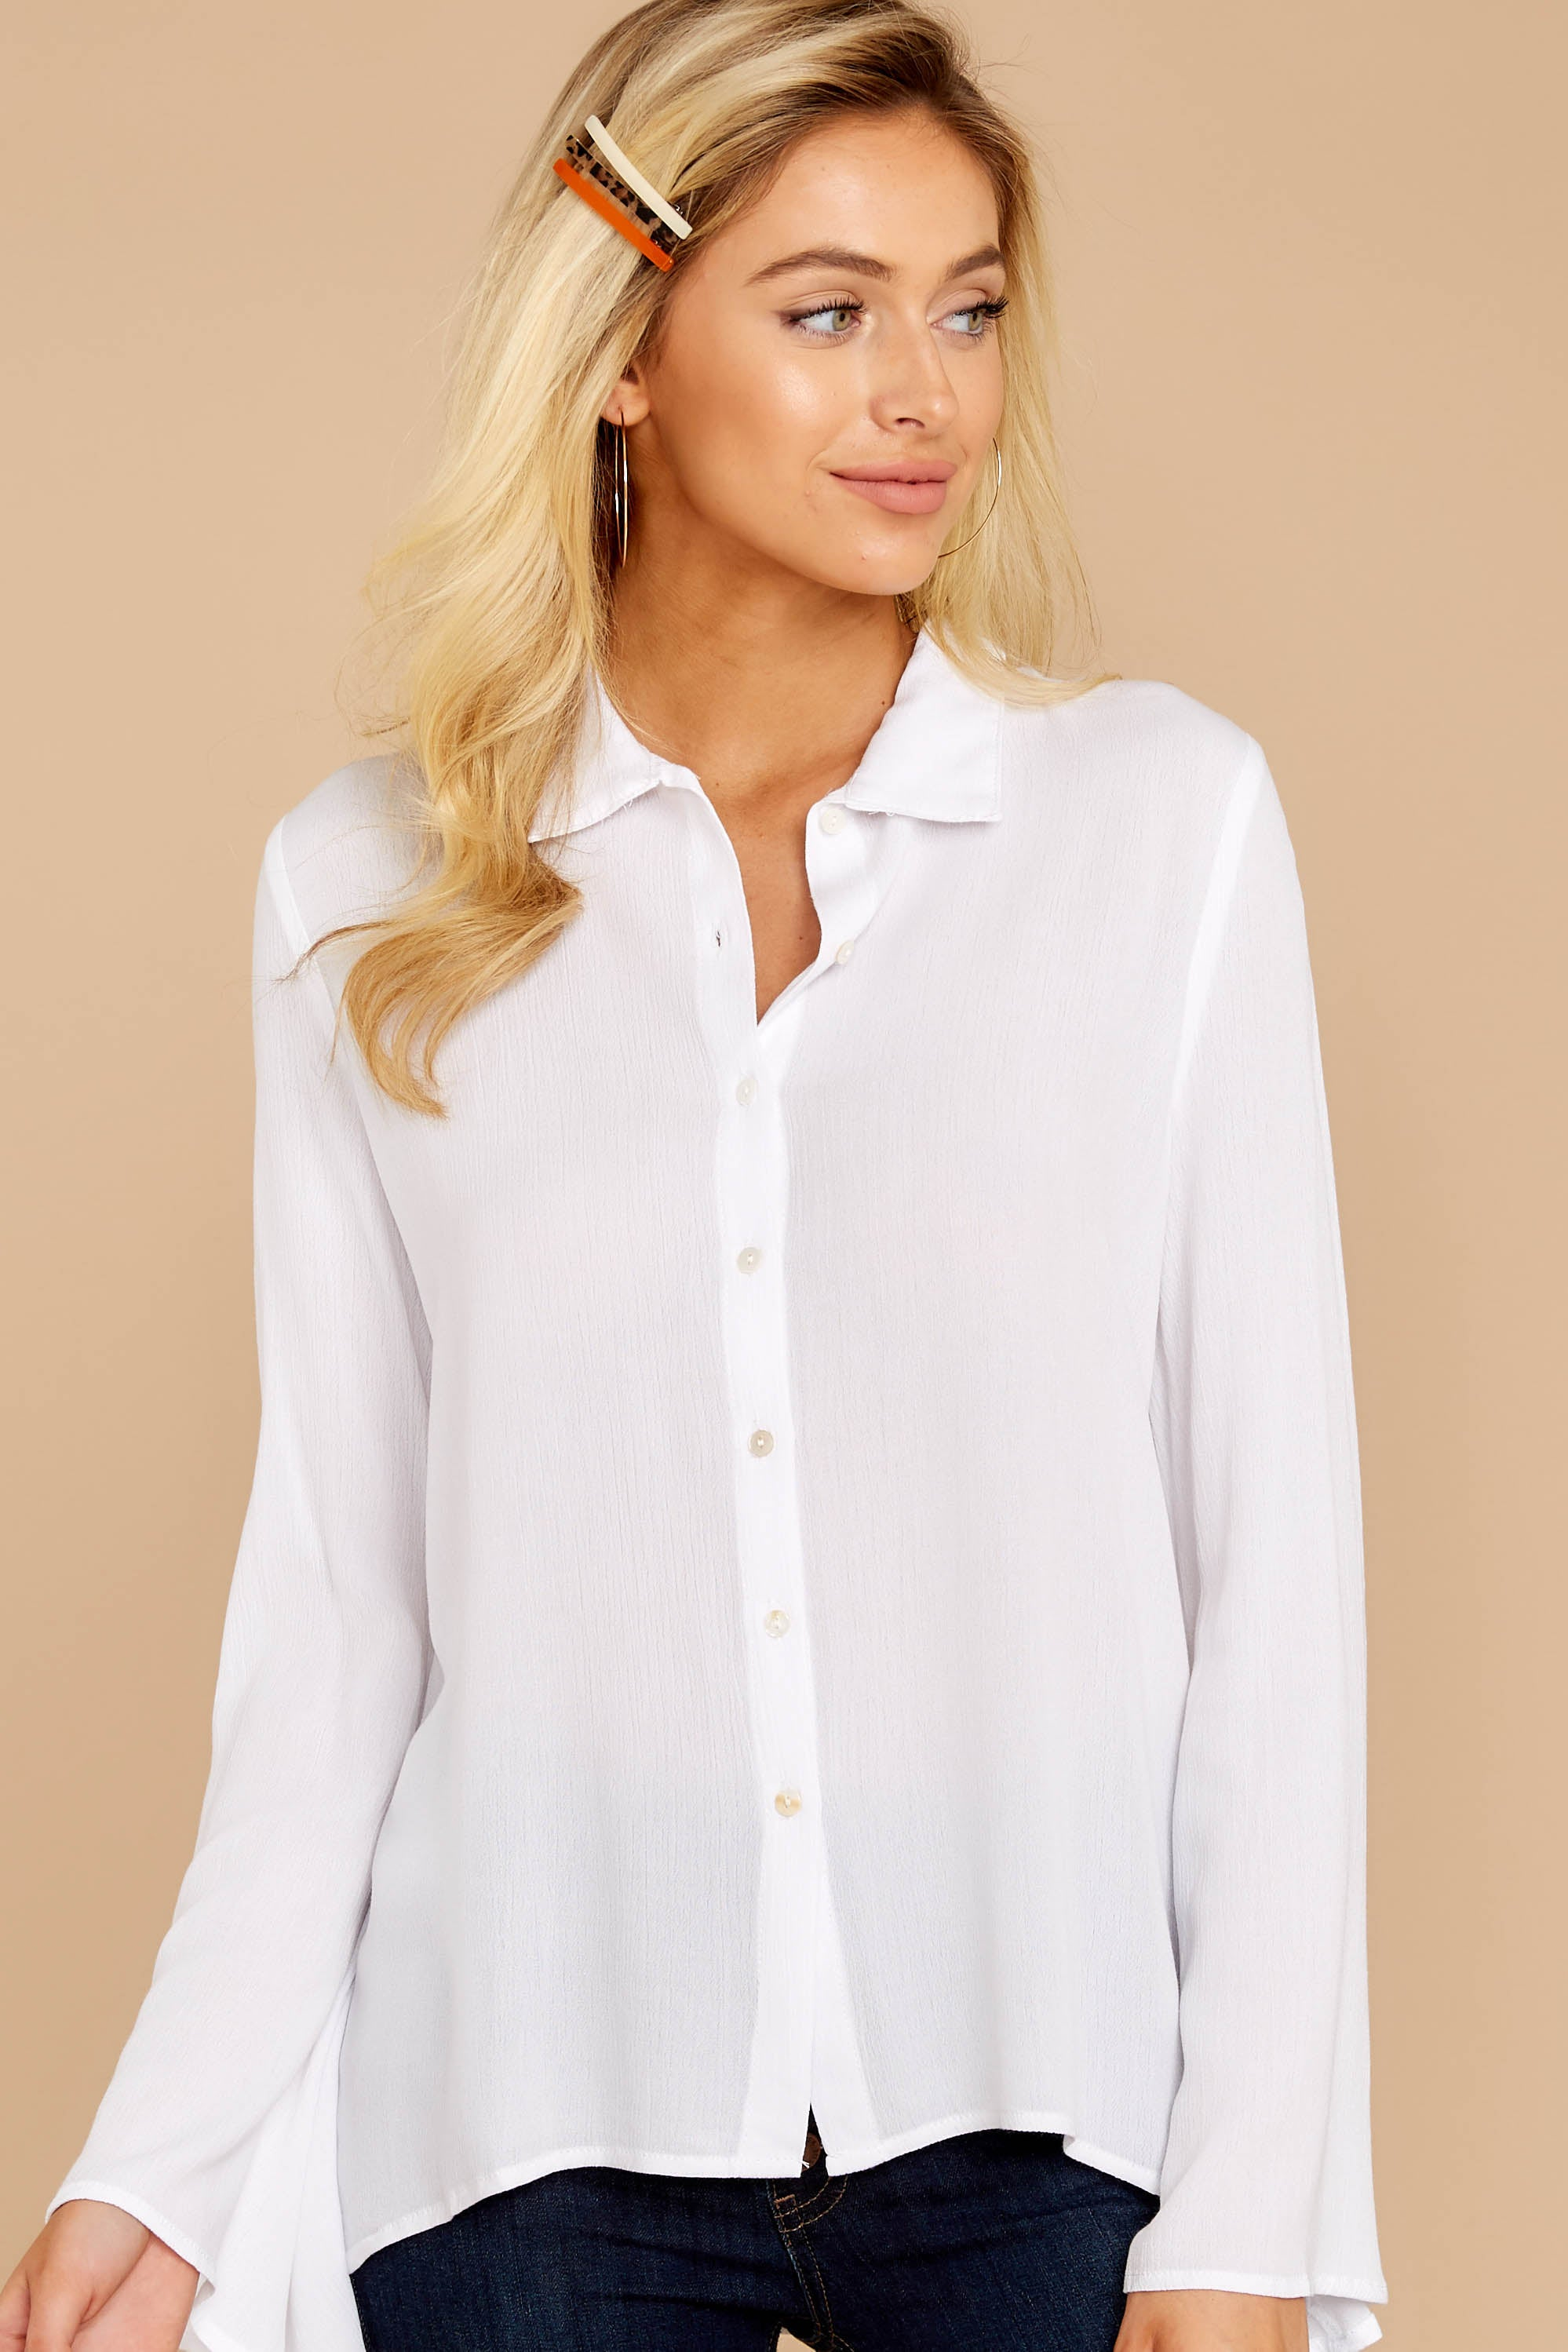 Ready For This White Button Up Top